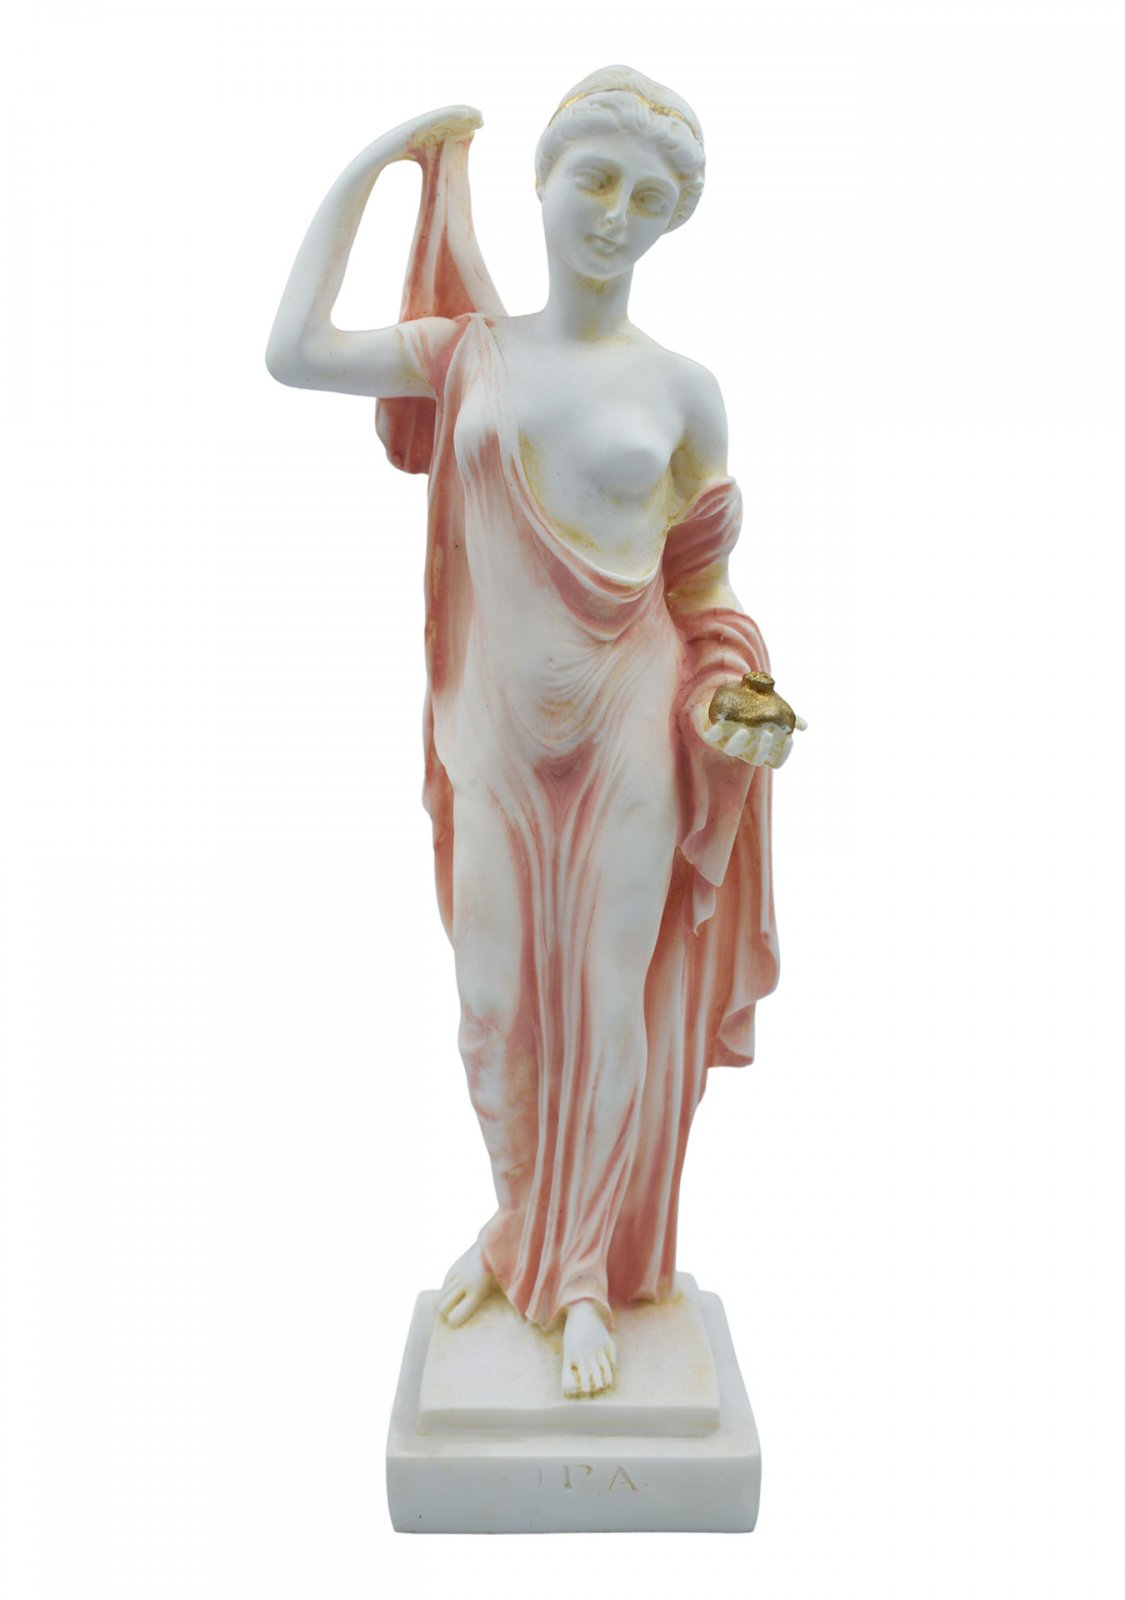 Hera, queen of gods and goddess of women and family, alabaster statue